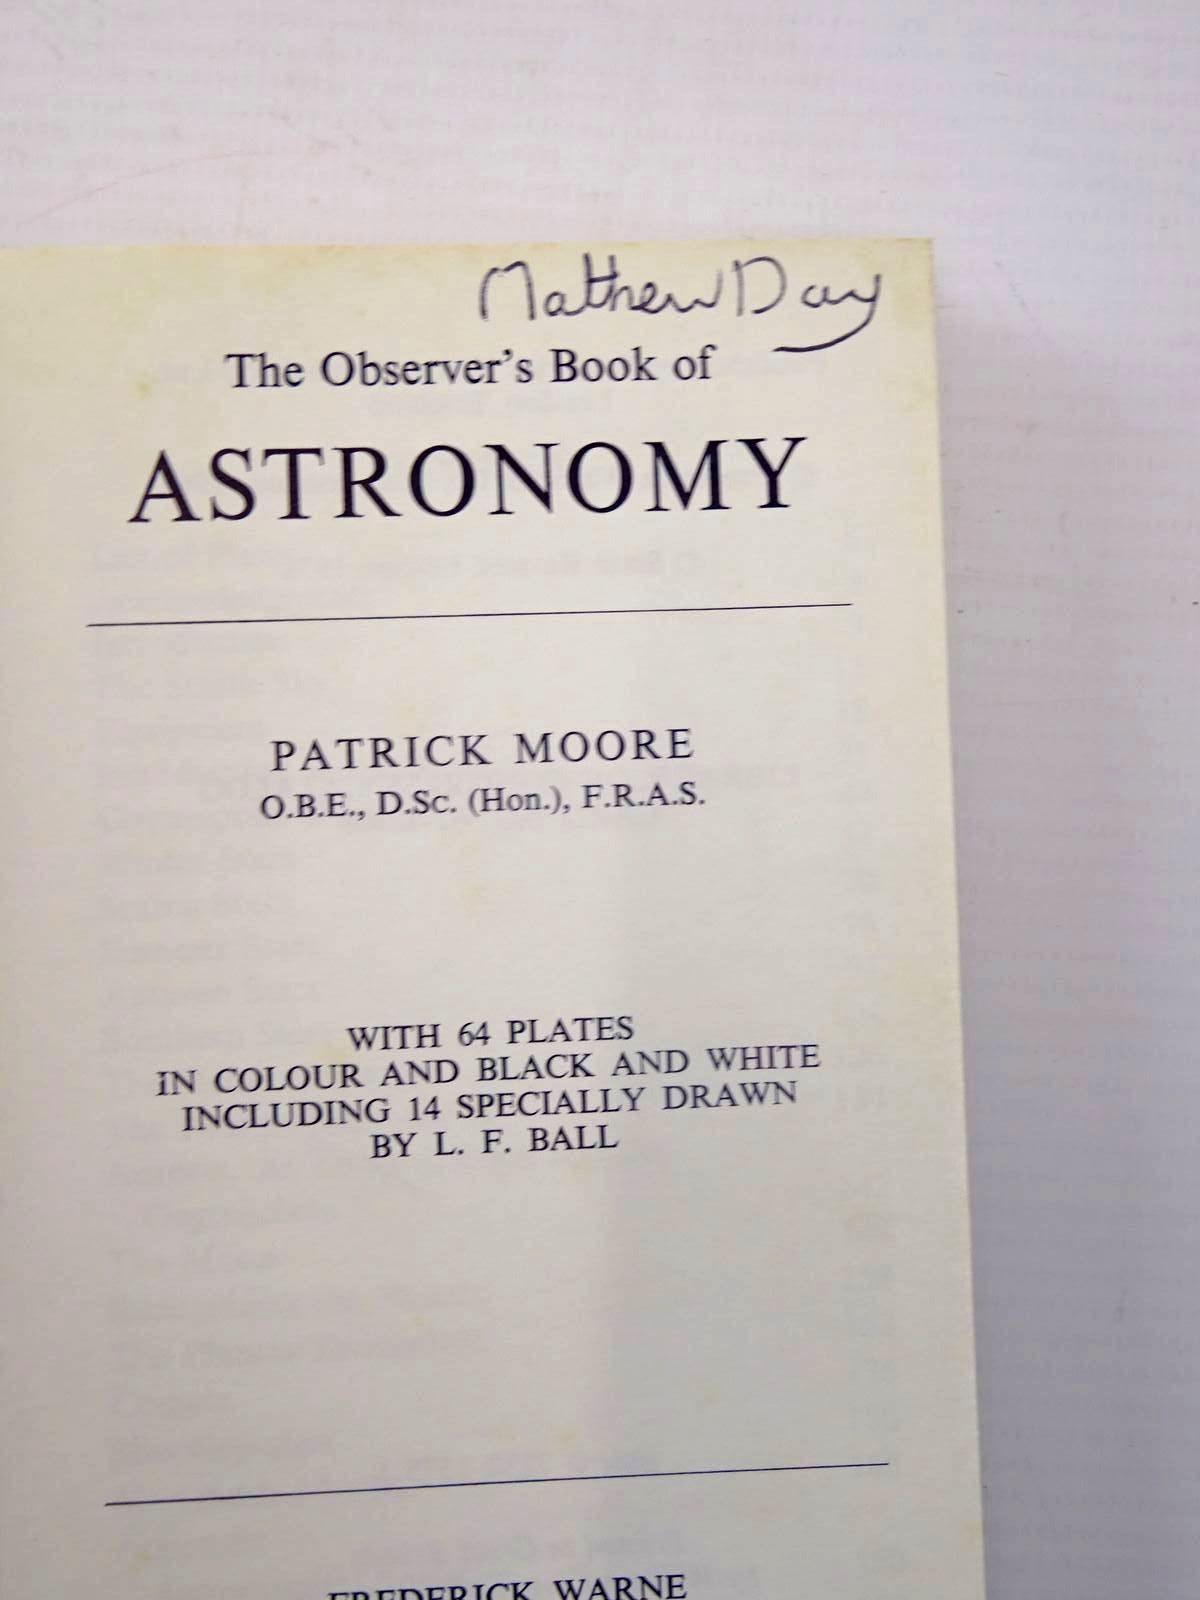 Photo of THE OBSERVER'S BOOK OF ASTRONOMY (CYANAMID WRAPPER) written by Moore, Patrick illustrated by Ball, L.F. published by Frederick Warne & Co Ltd. (STOCK CODE: 2130455)  for sale by Stella & Rose's Books